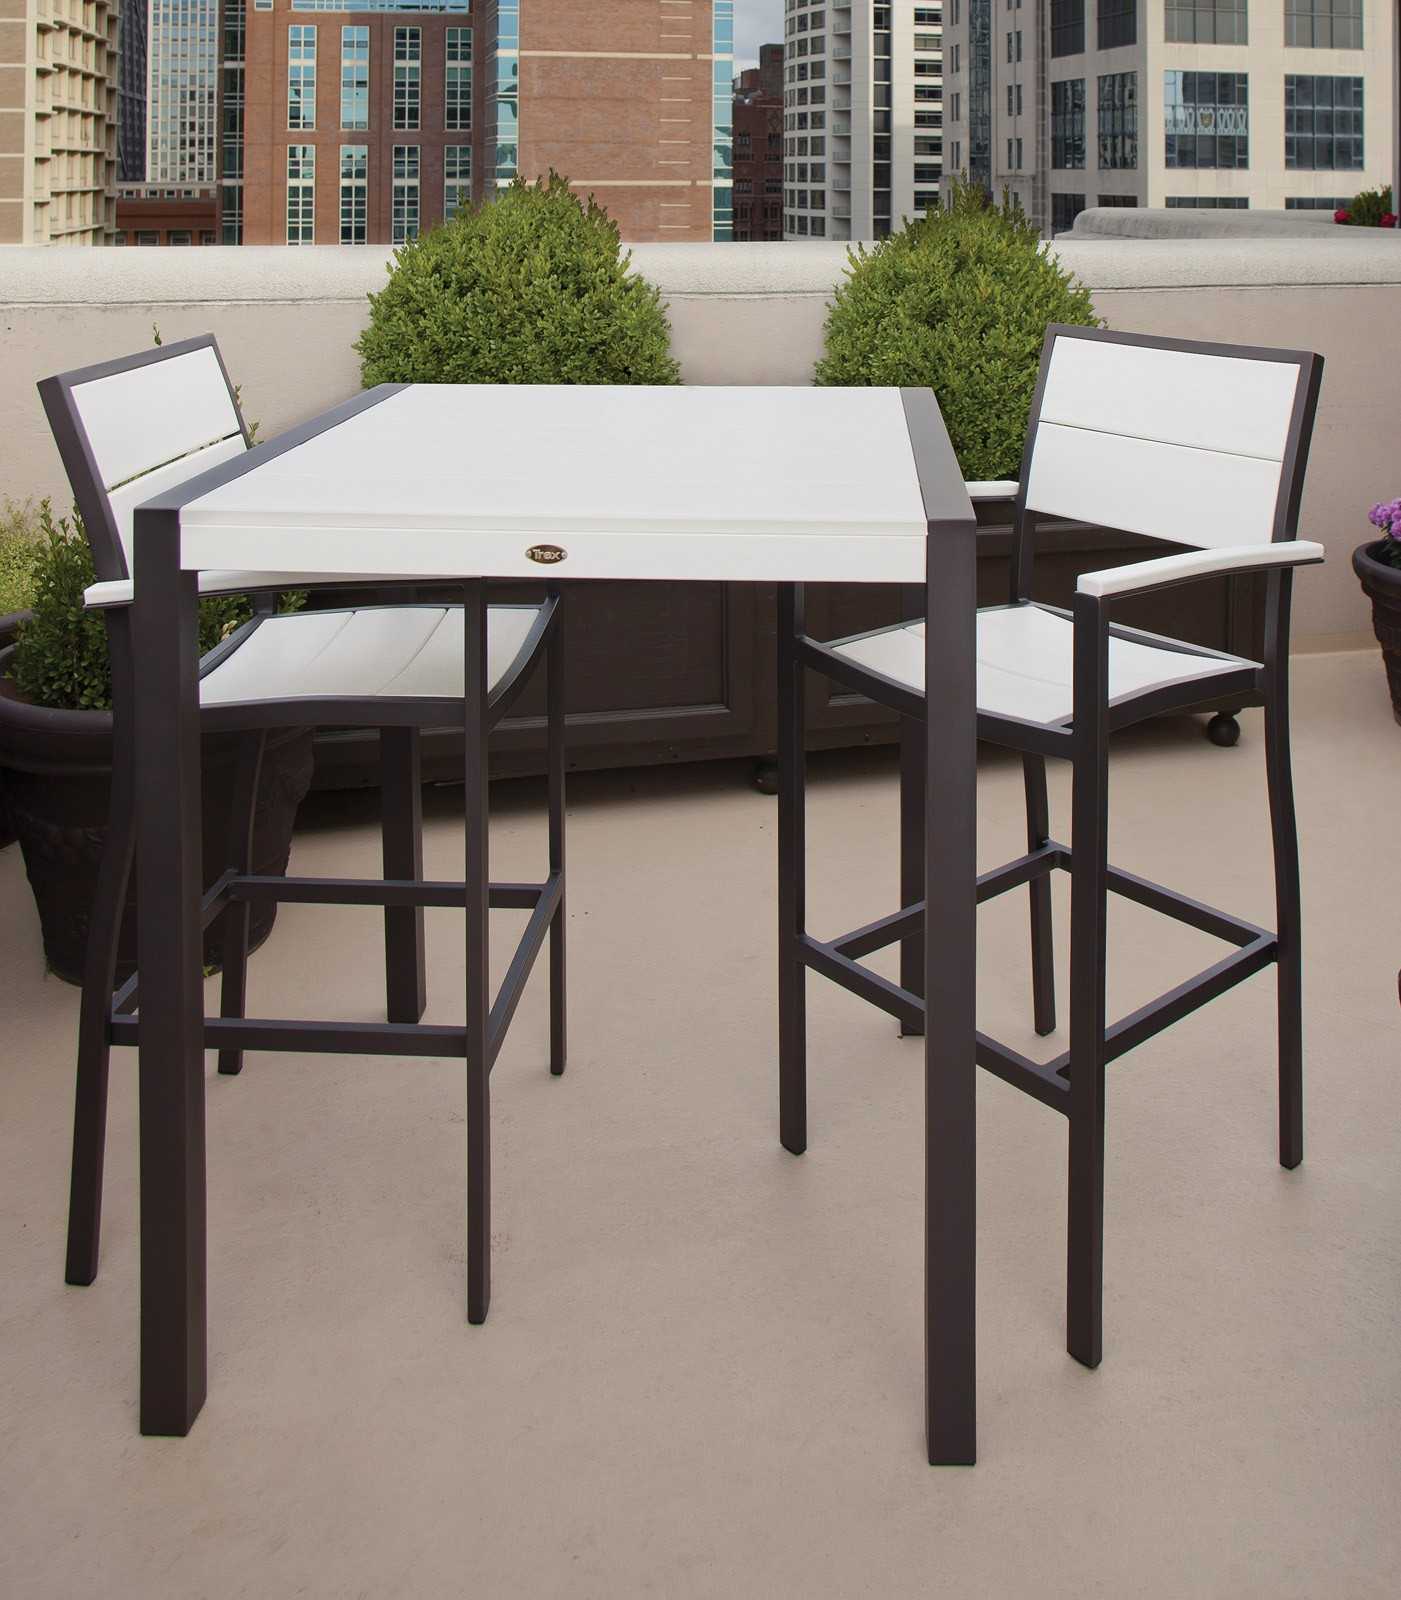 Trex� Outdoor Furniture� Surf City 3 Piece Dining Ensemble